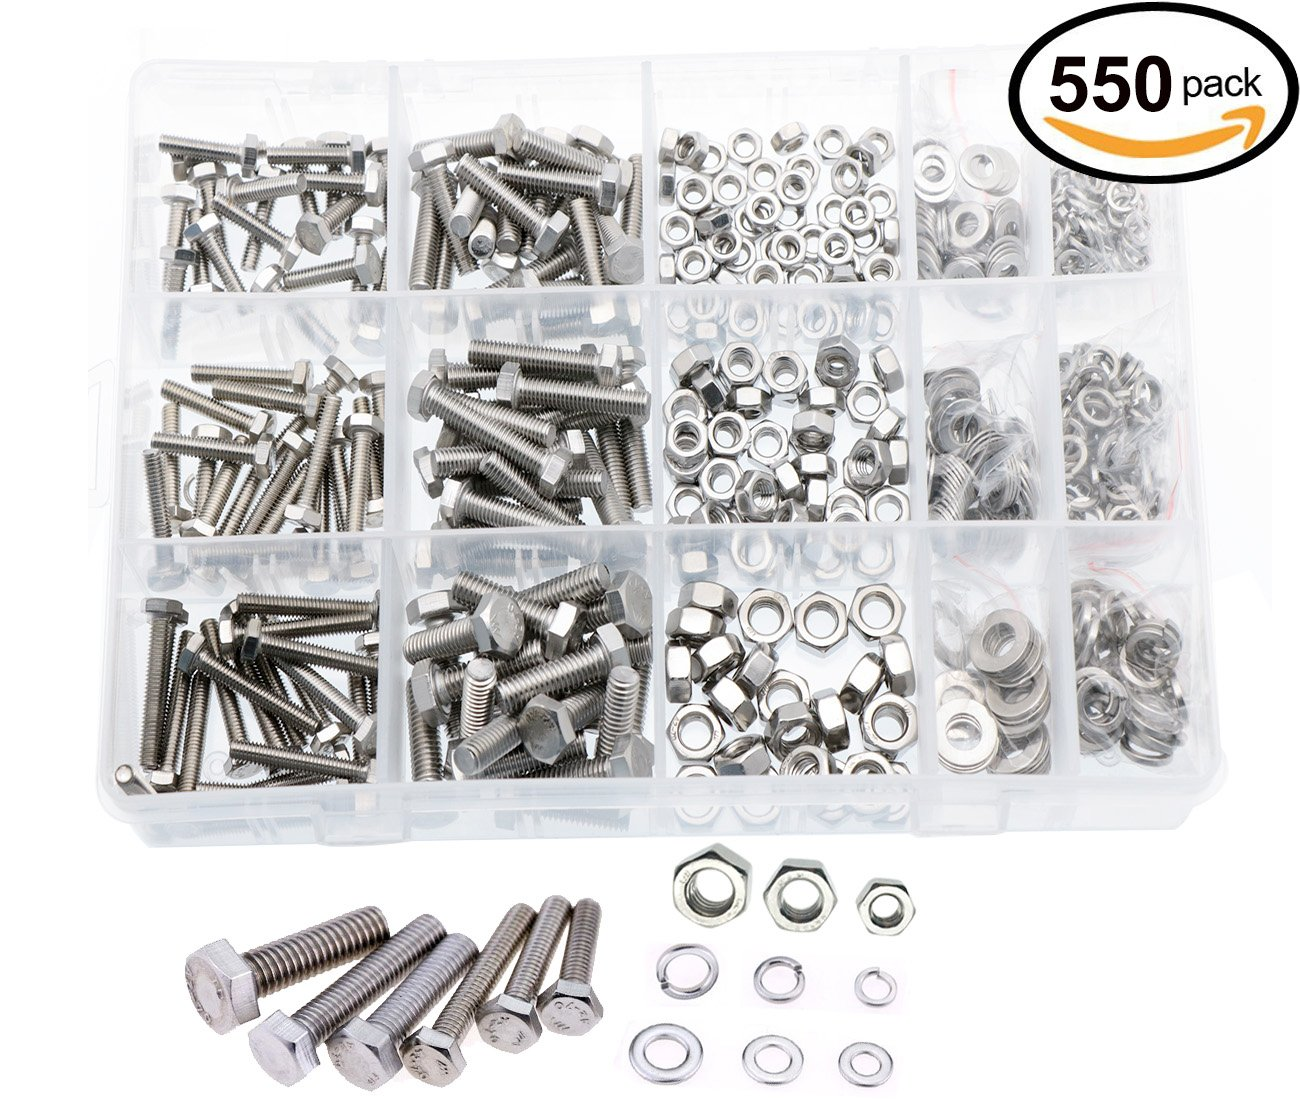 uxcell M12x1.25x10mm Zinc Plated Hex Nuts Fastener 20pcs for Screws Bolts